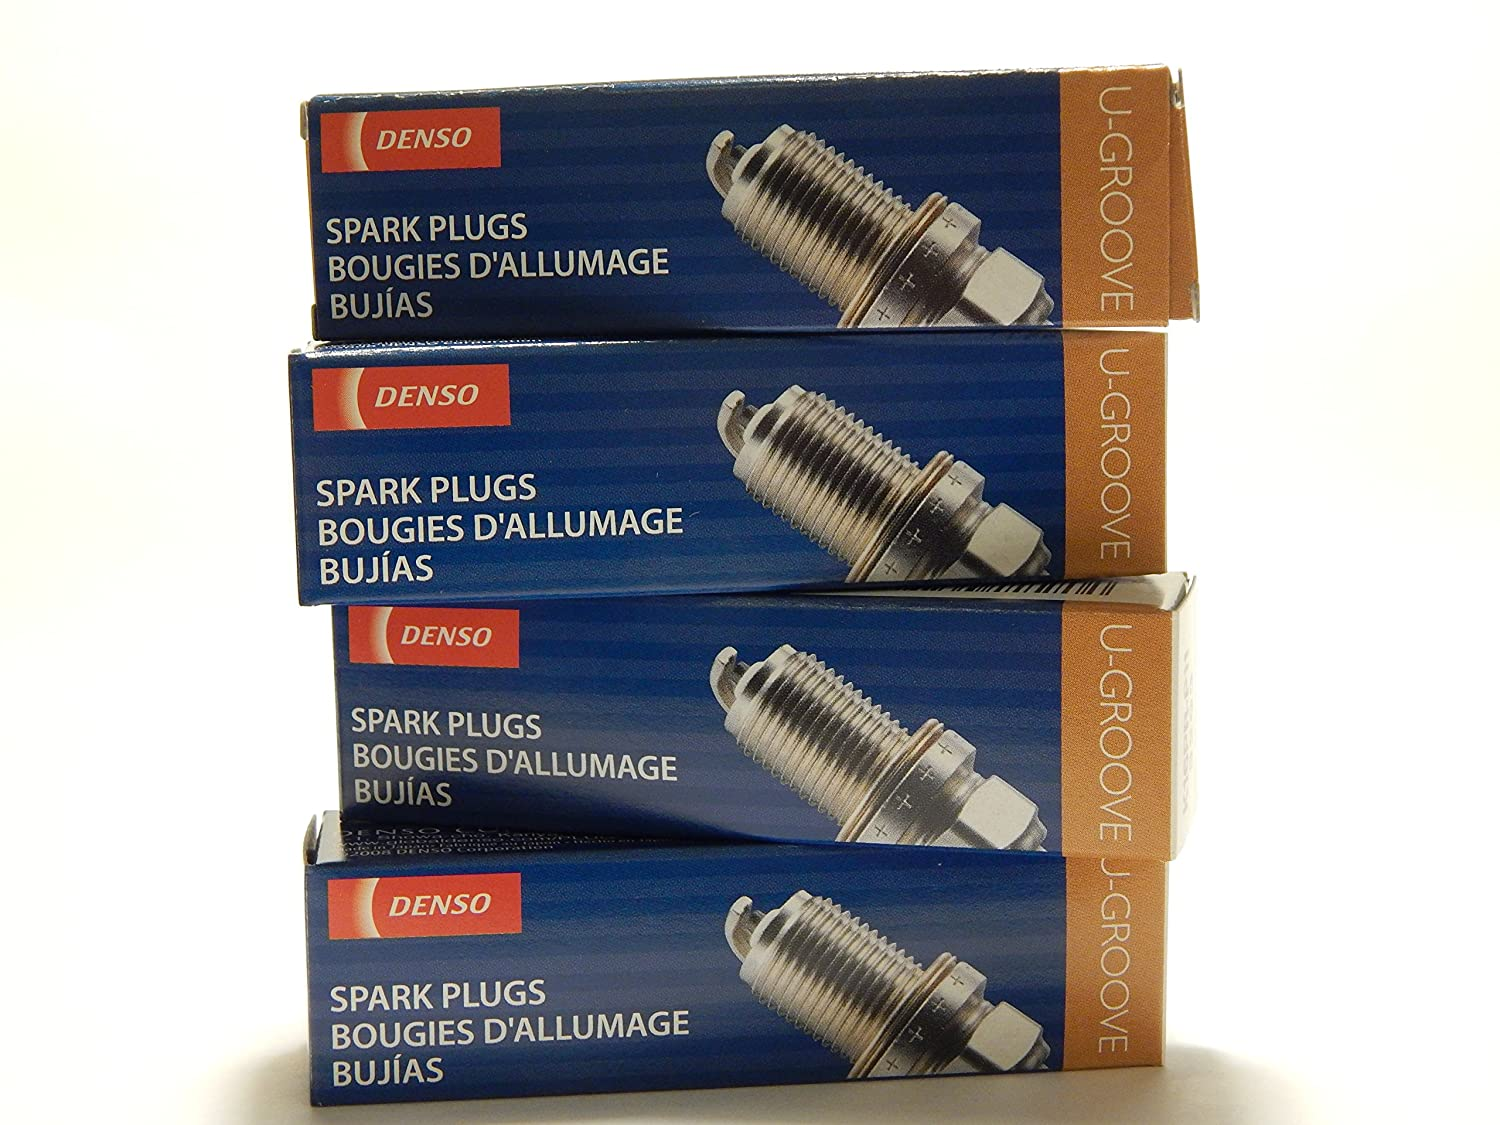 Amazon.com: 4 PCS *NEW* -- DENSO #6076 -- U-GROOVE - Standard Spark Plugs -- K16HPR-U11: Automotive